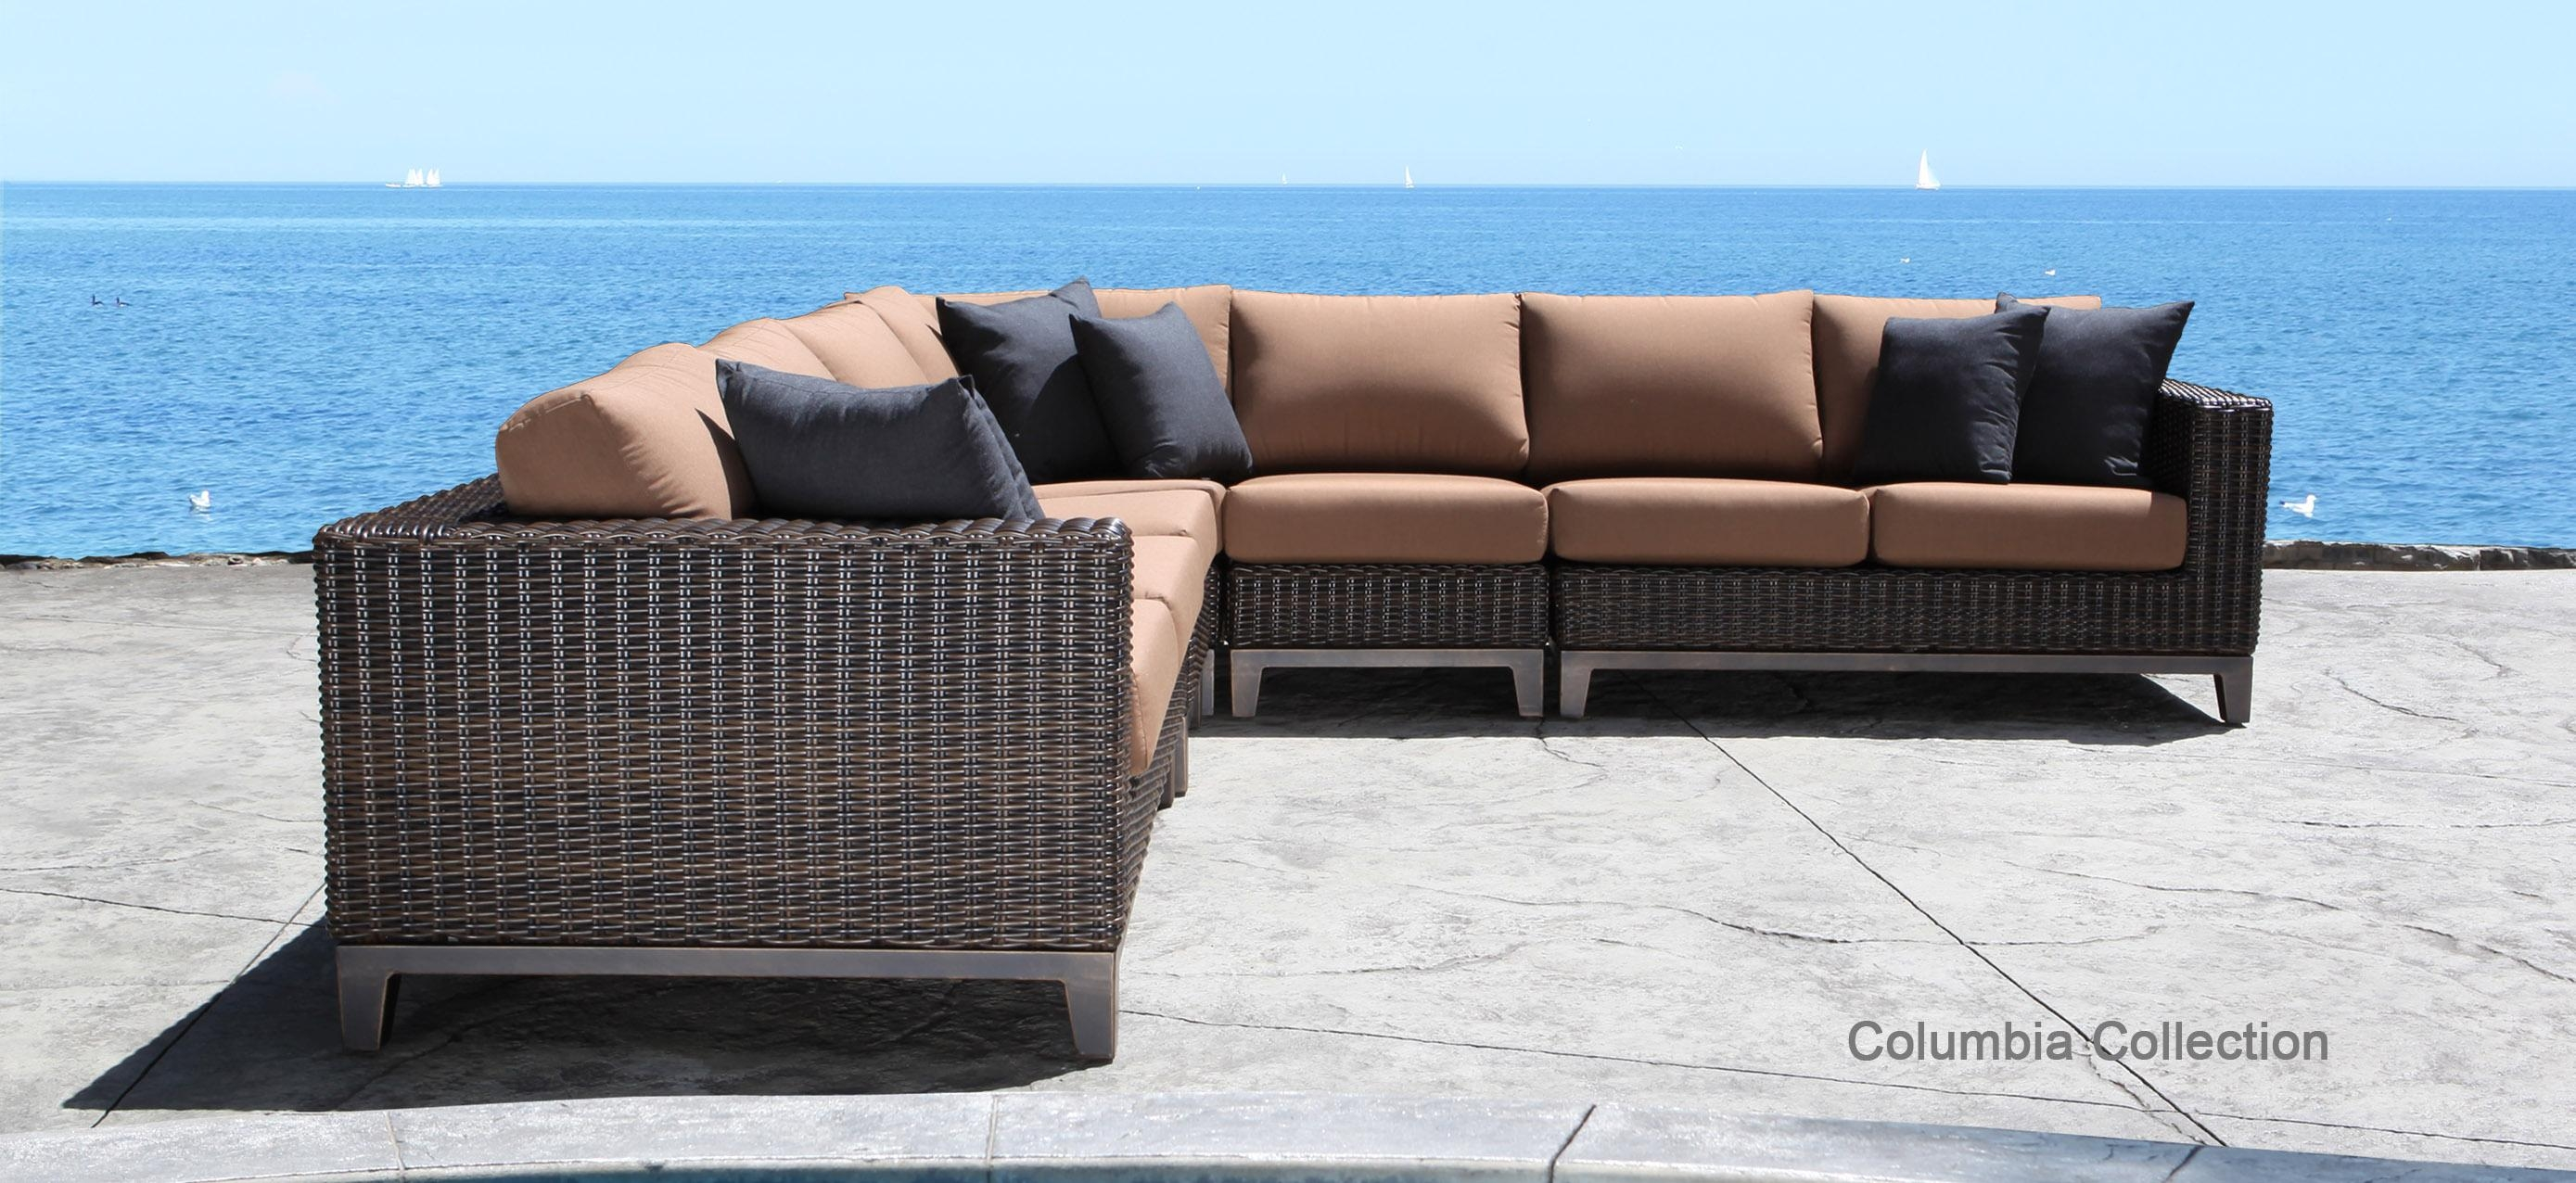 Modern Rattan Furniture And Outdoor Patio Sofas Image 16 Of 24 With Regard To Modern Rattan Sofas (Image 13 of 23)